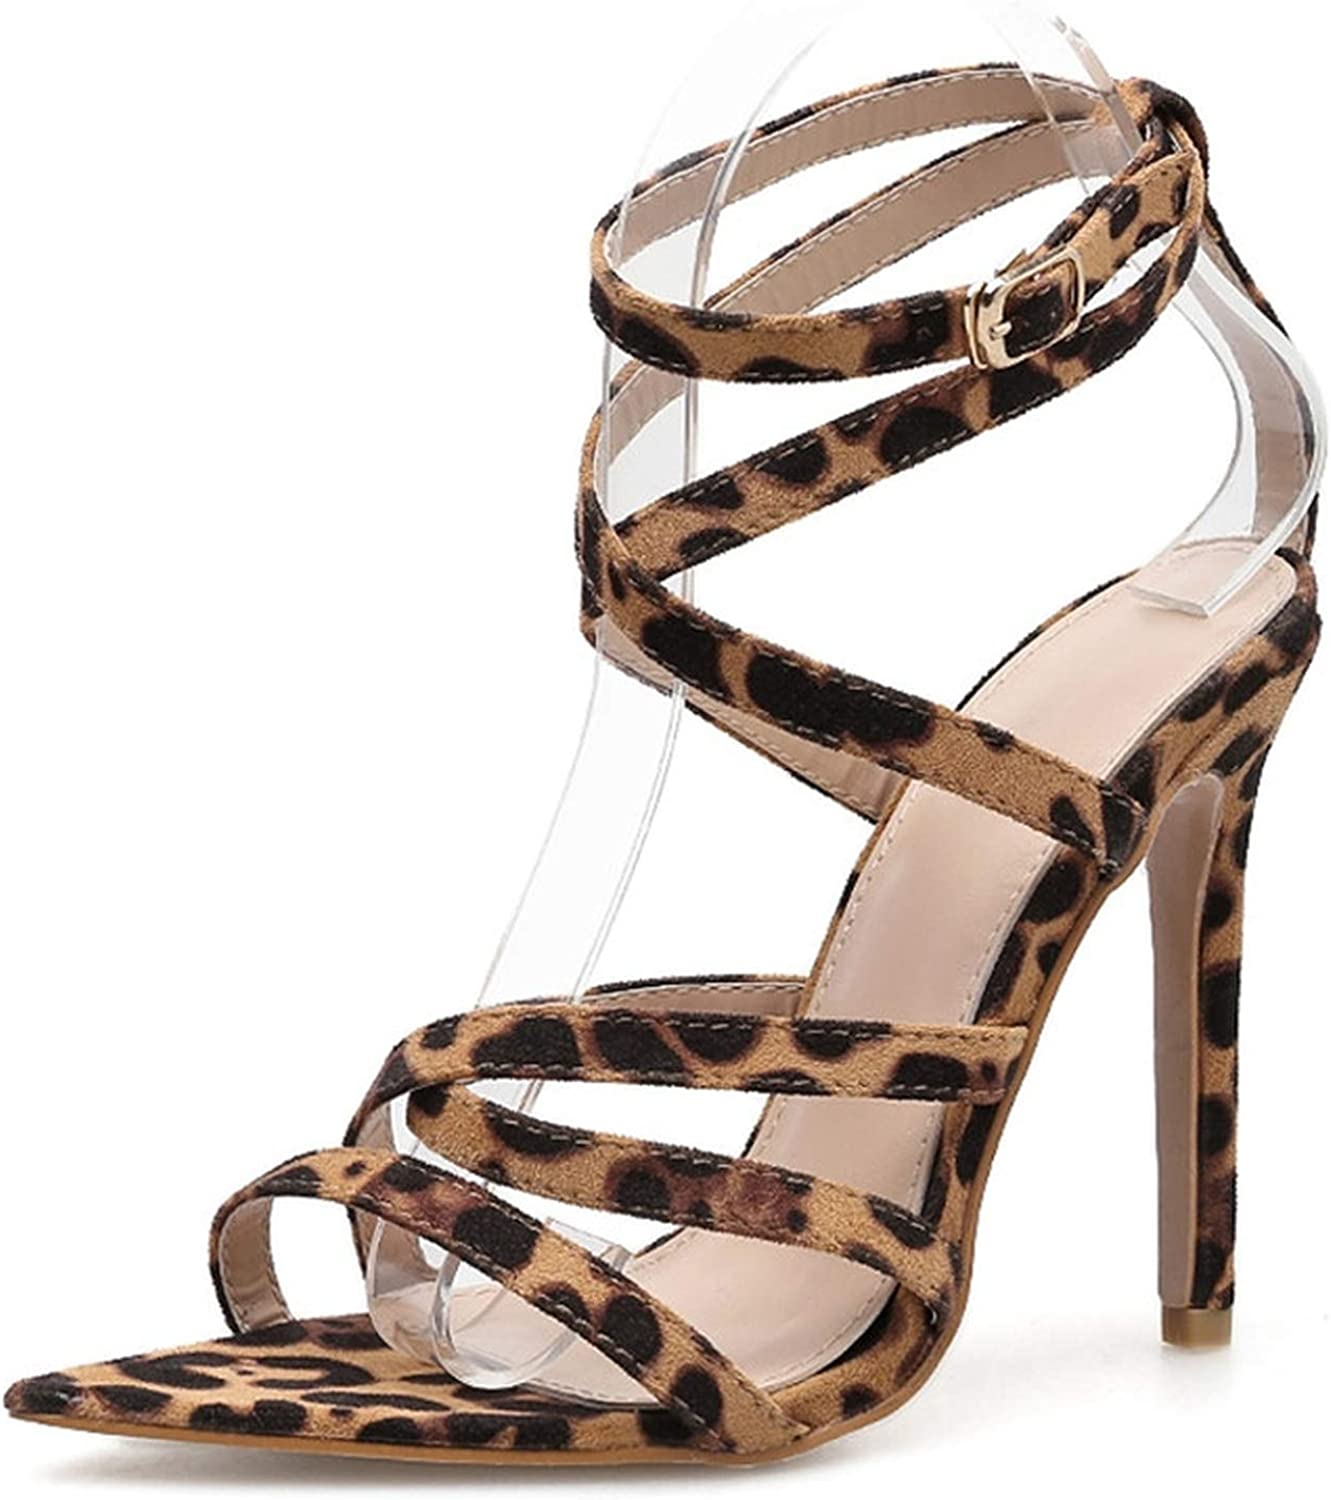 April With You Lace Up Rome Sandals Ladies Summer Leopard Print High Heel Gladiator Sandals Size 35-40